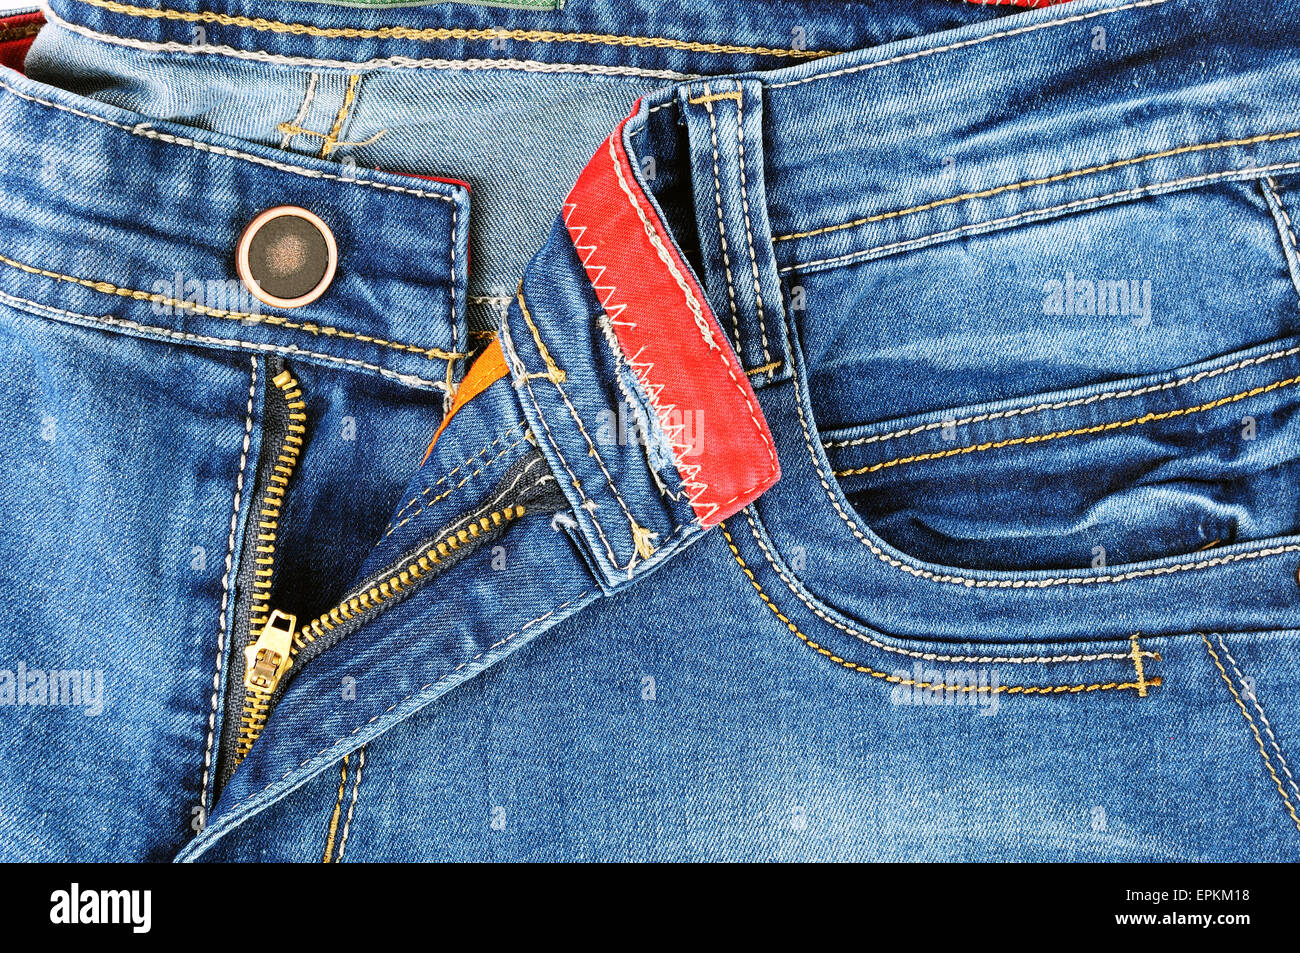 Zipper Detail And The Front Pocket Of Pants In Jeans For